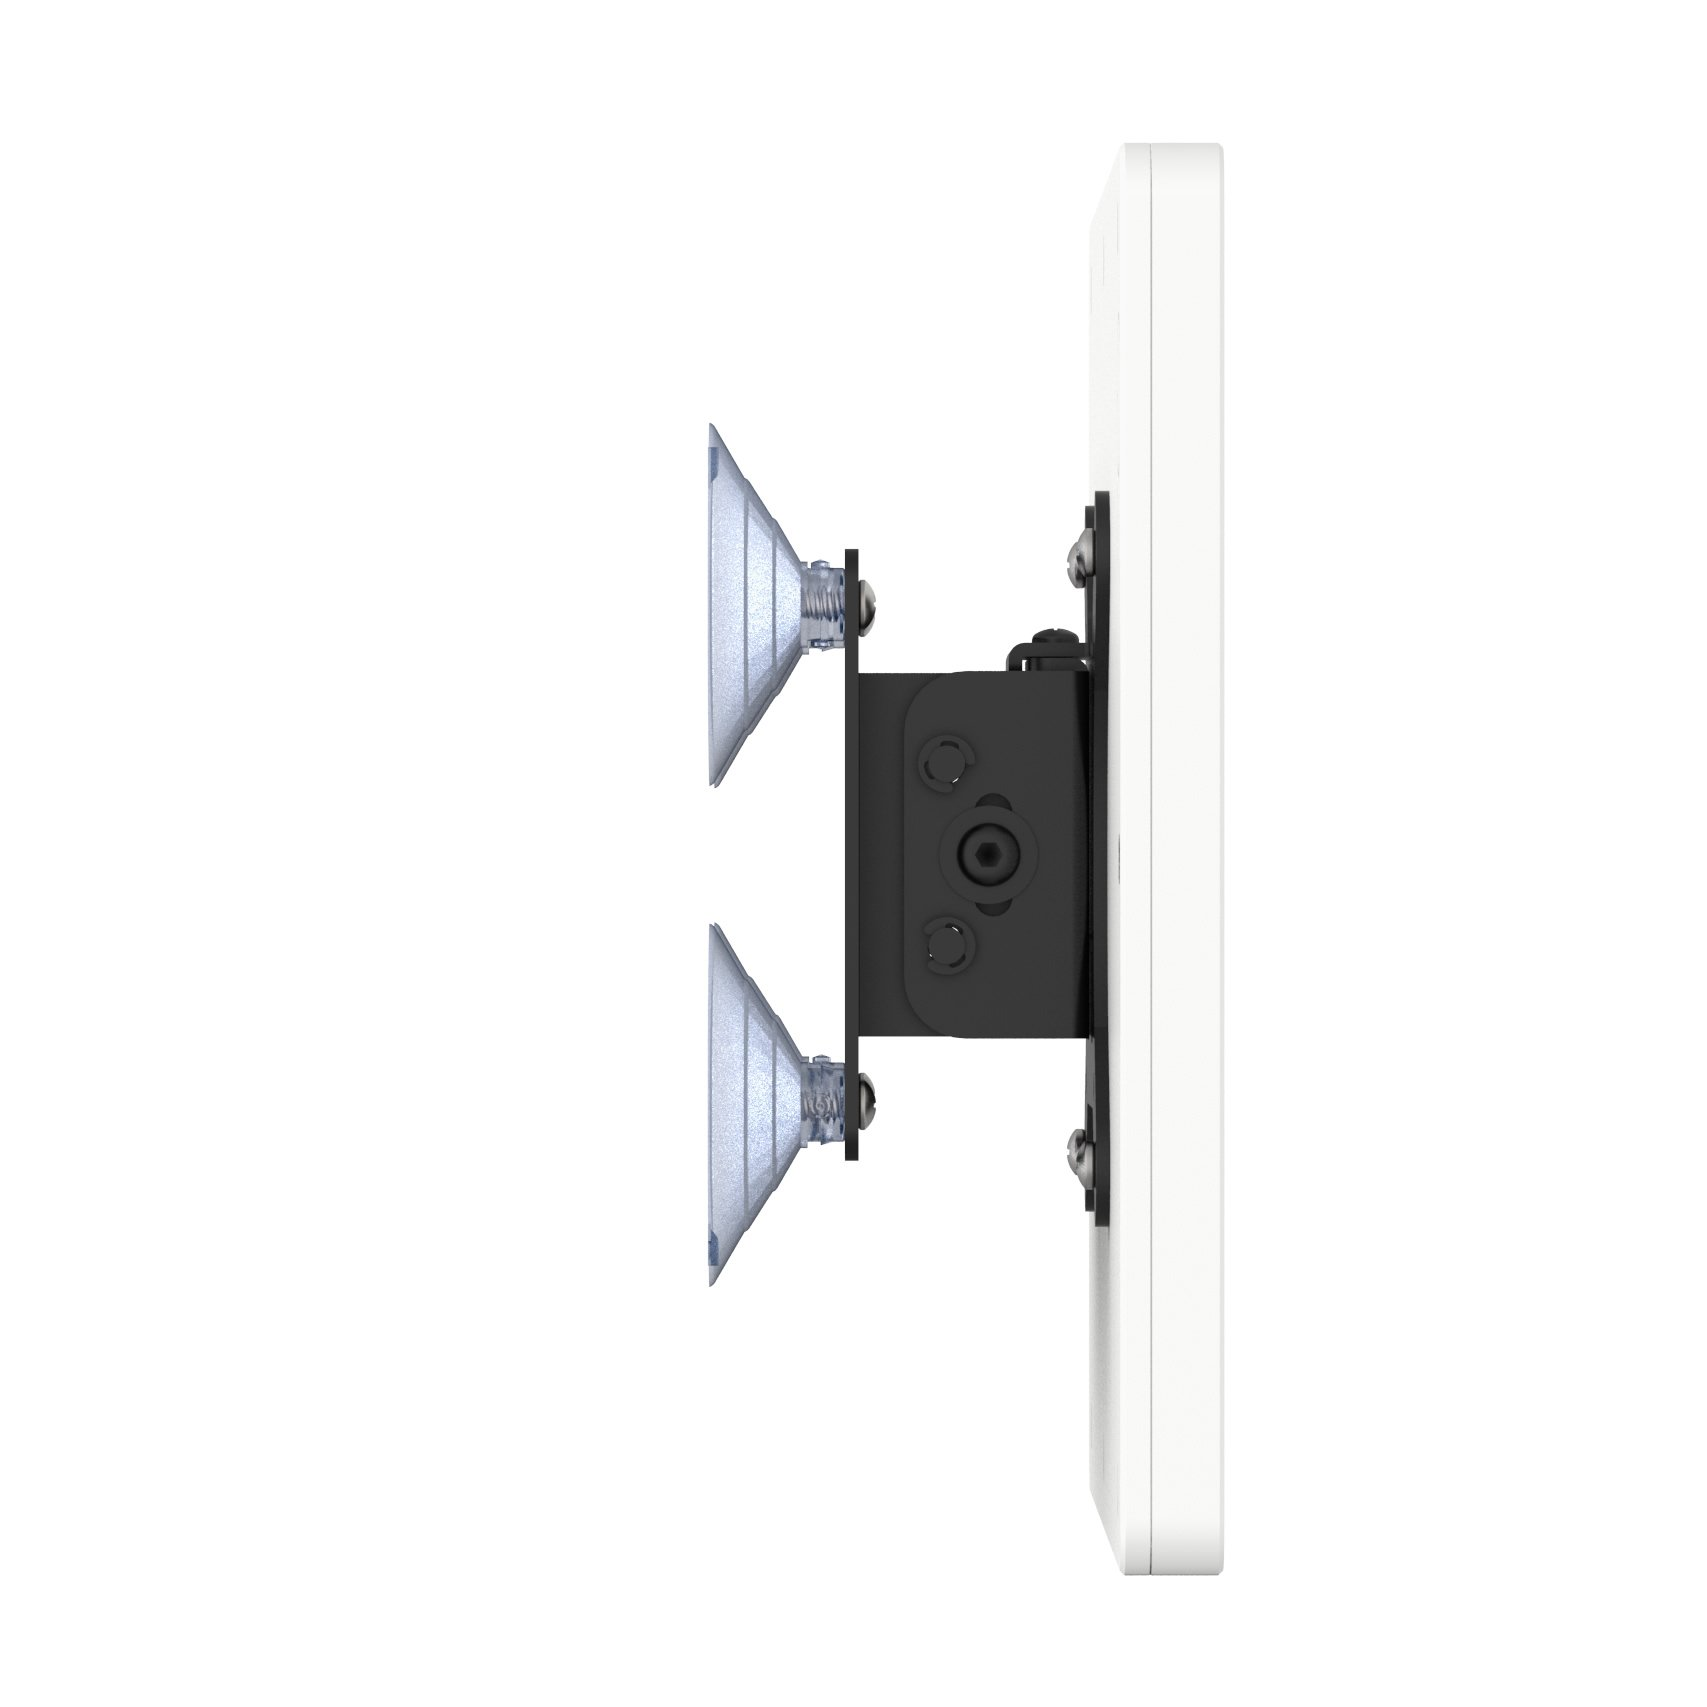 iPad Pro 10.5'' White Home Button Covered Tilting Removable Glass Mount [Bundle] by VidaMount (Image #4)